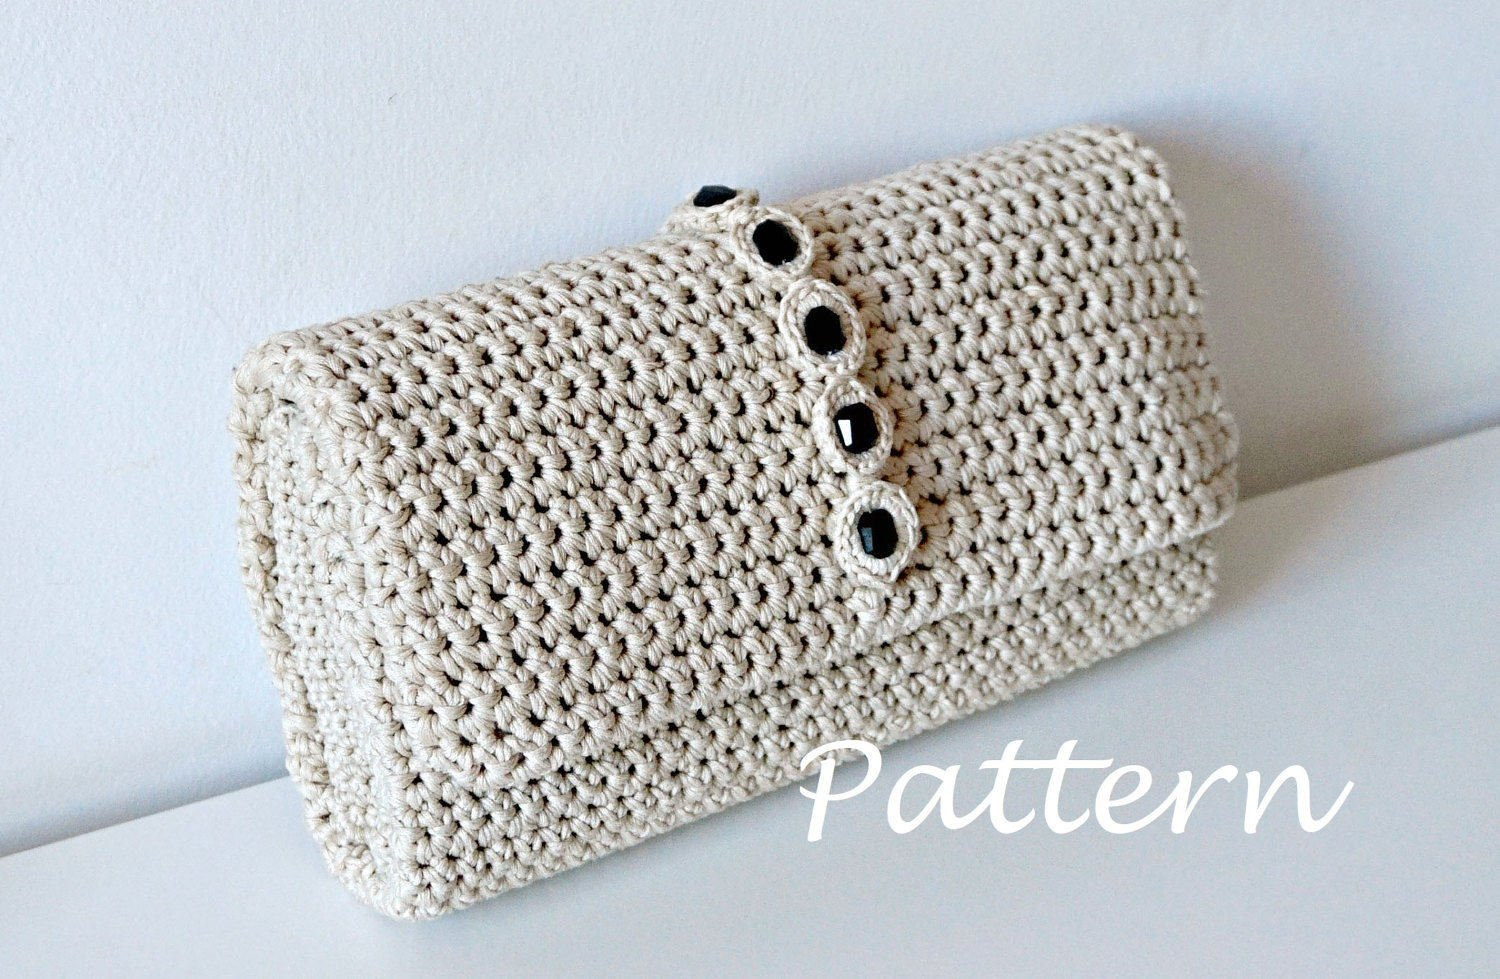 Crochet Pouch Elegant Crochet Pattern Crochet Bag Pattern Crochet Purse Pochette Of Awesome 48 Pics Crochet Pouch